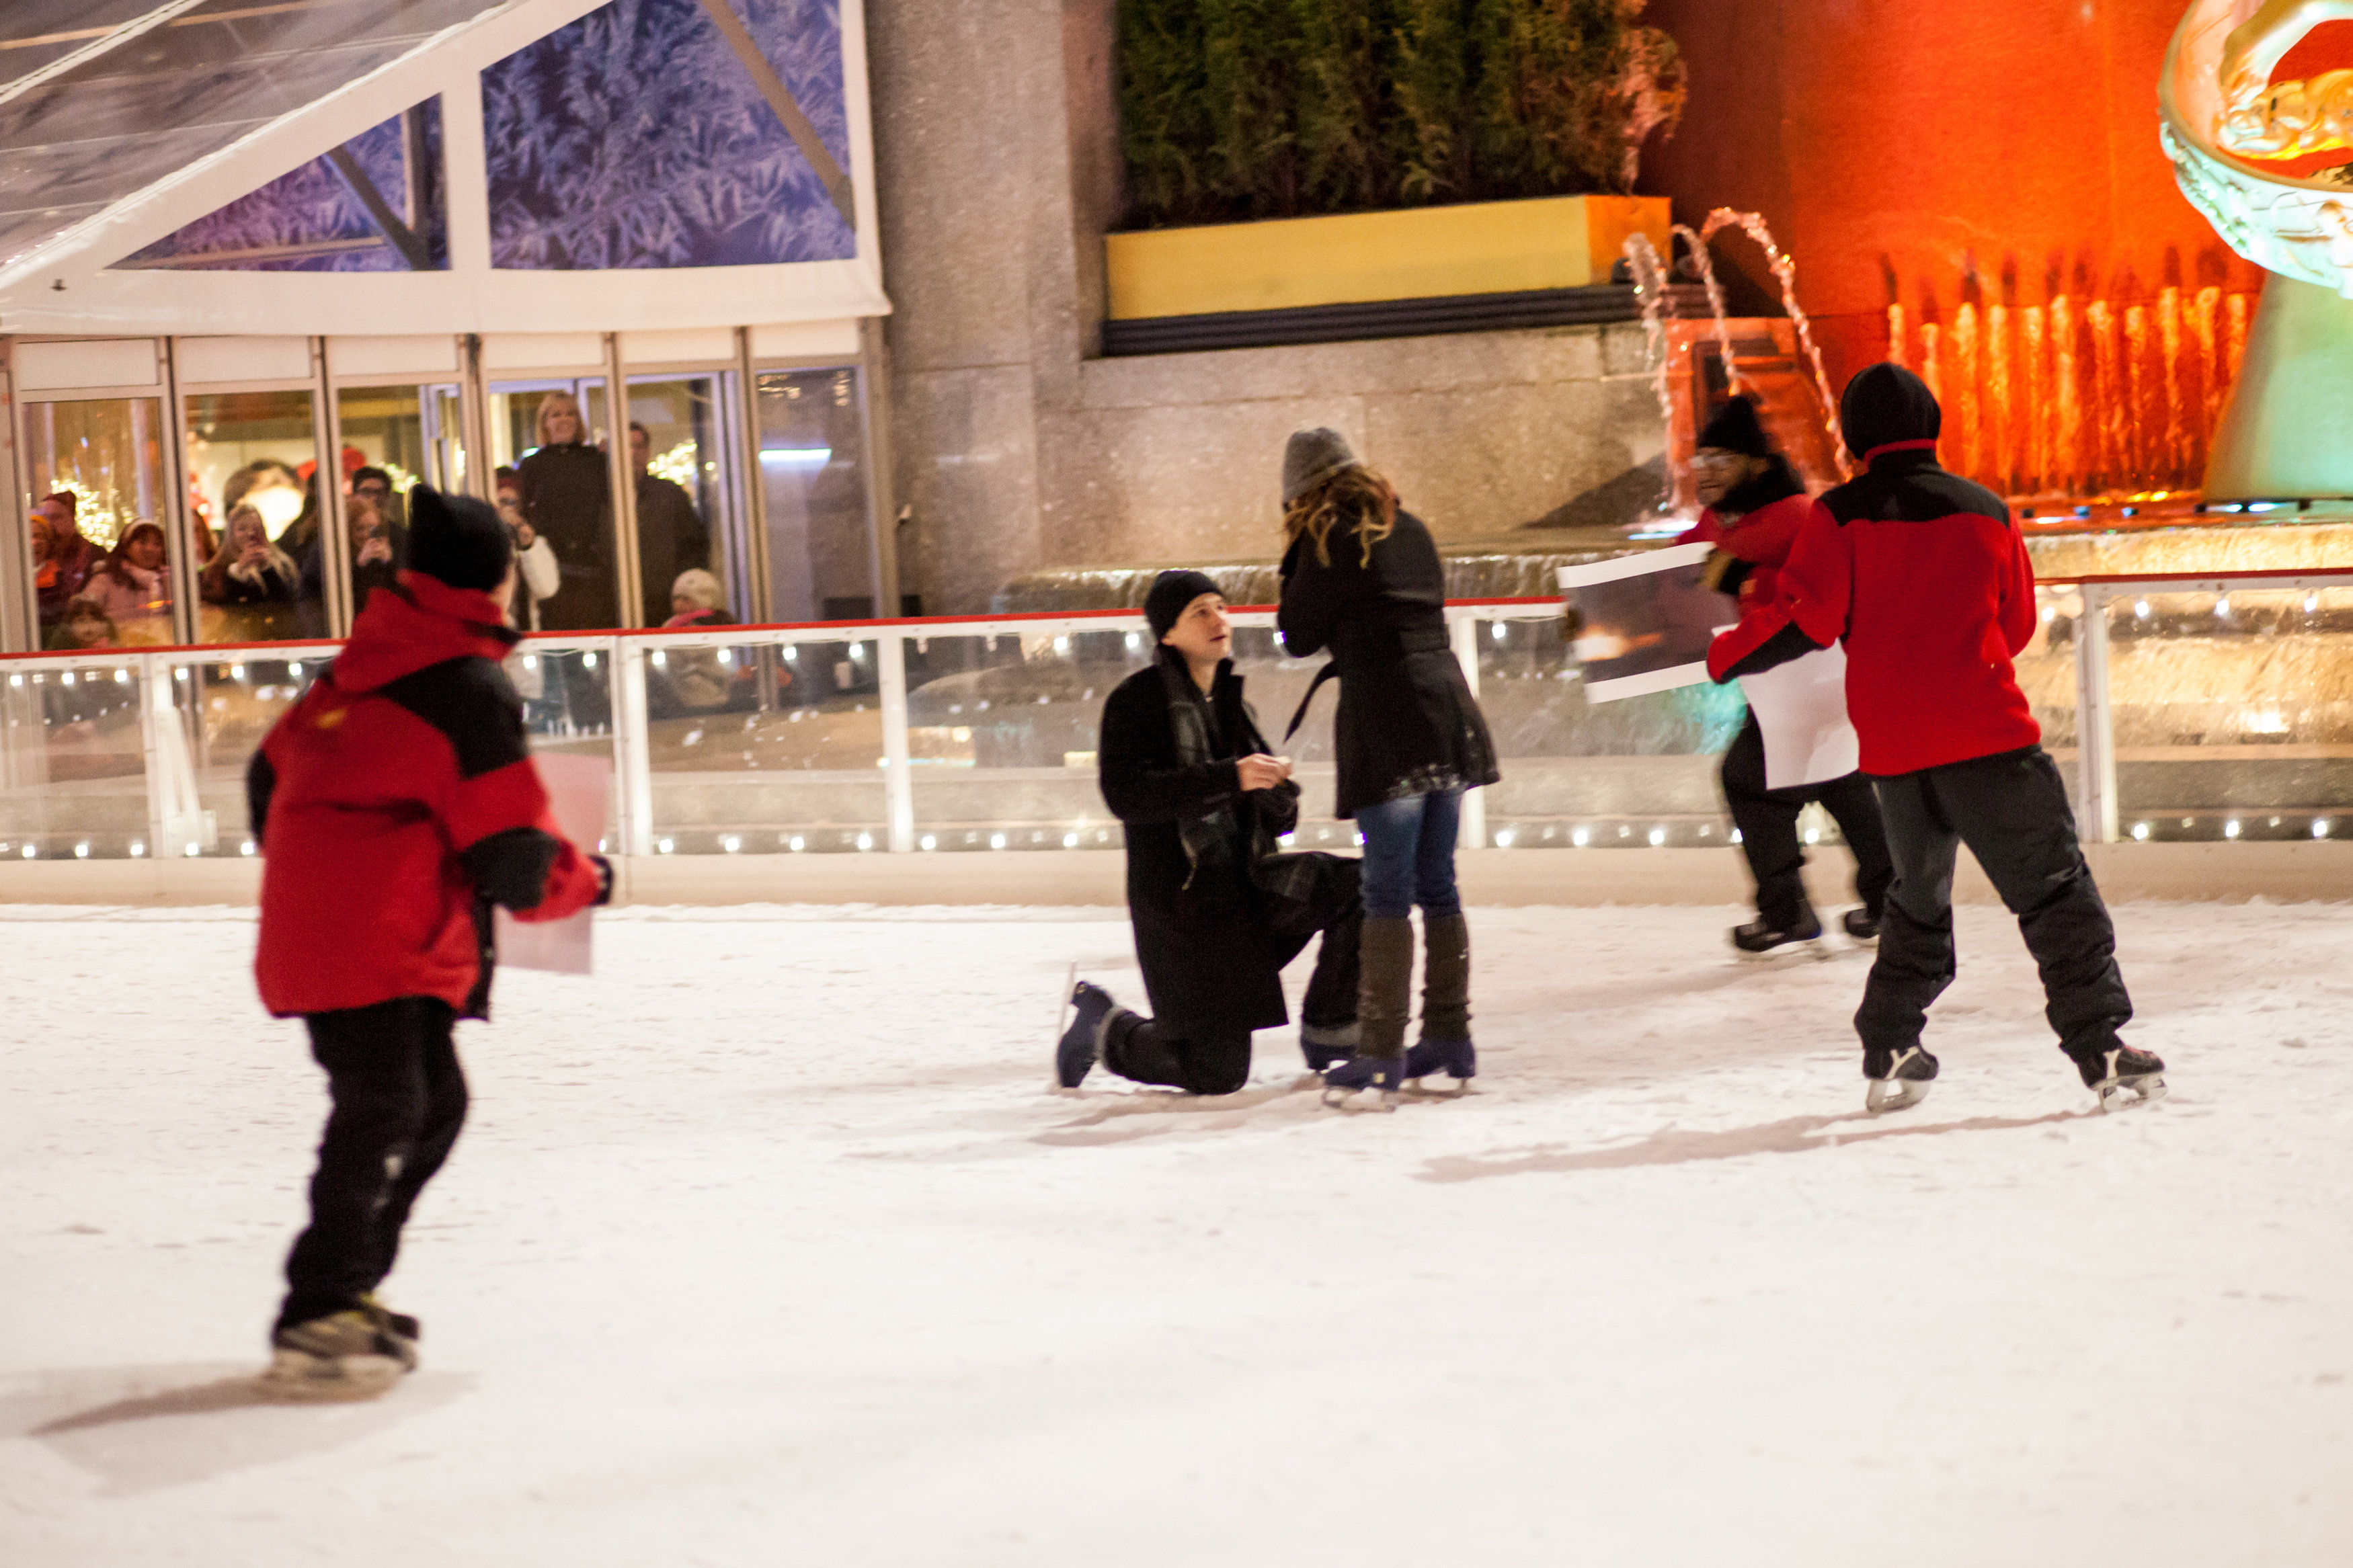 Image 7 of Christmas Day Proposal at Rockefeller Plaza